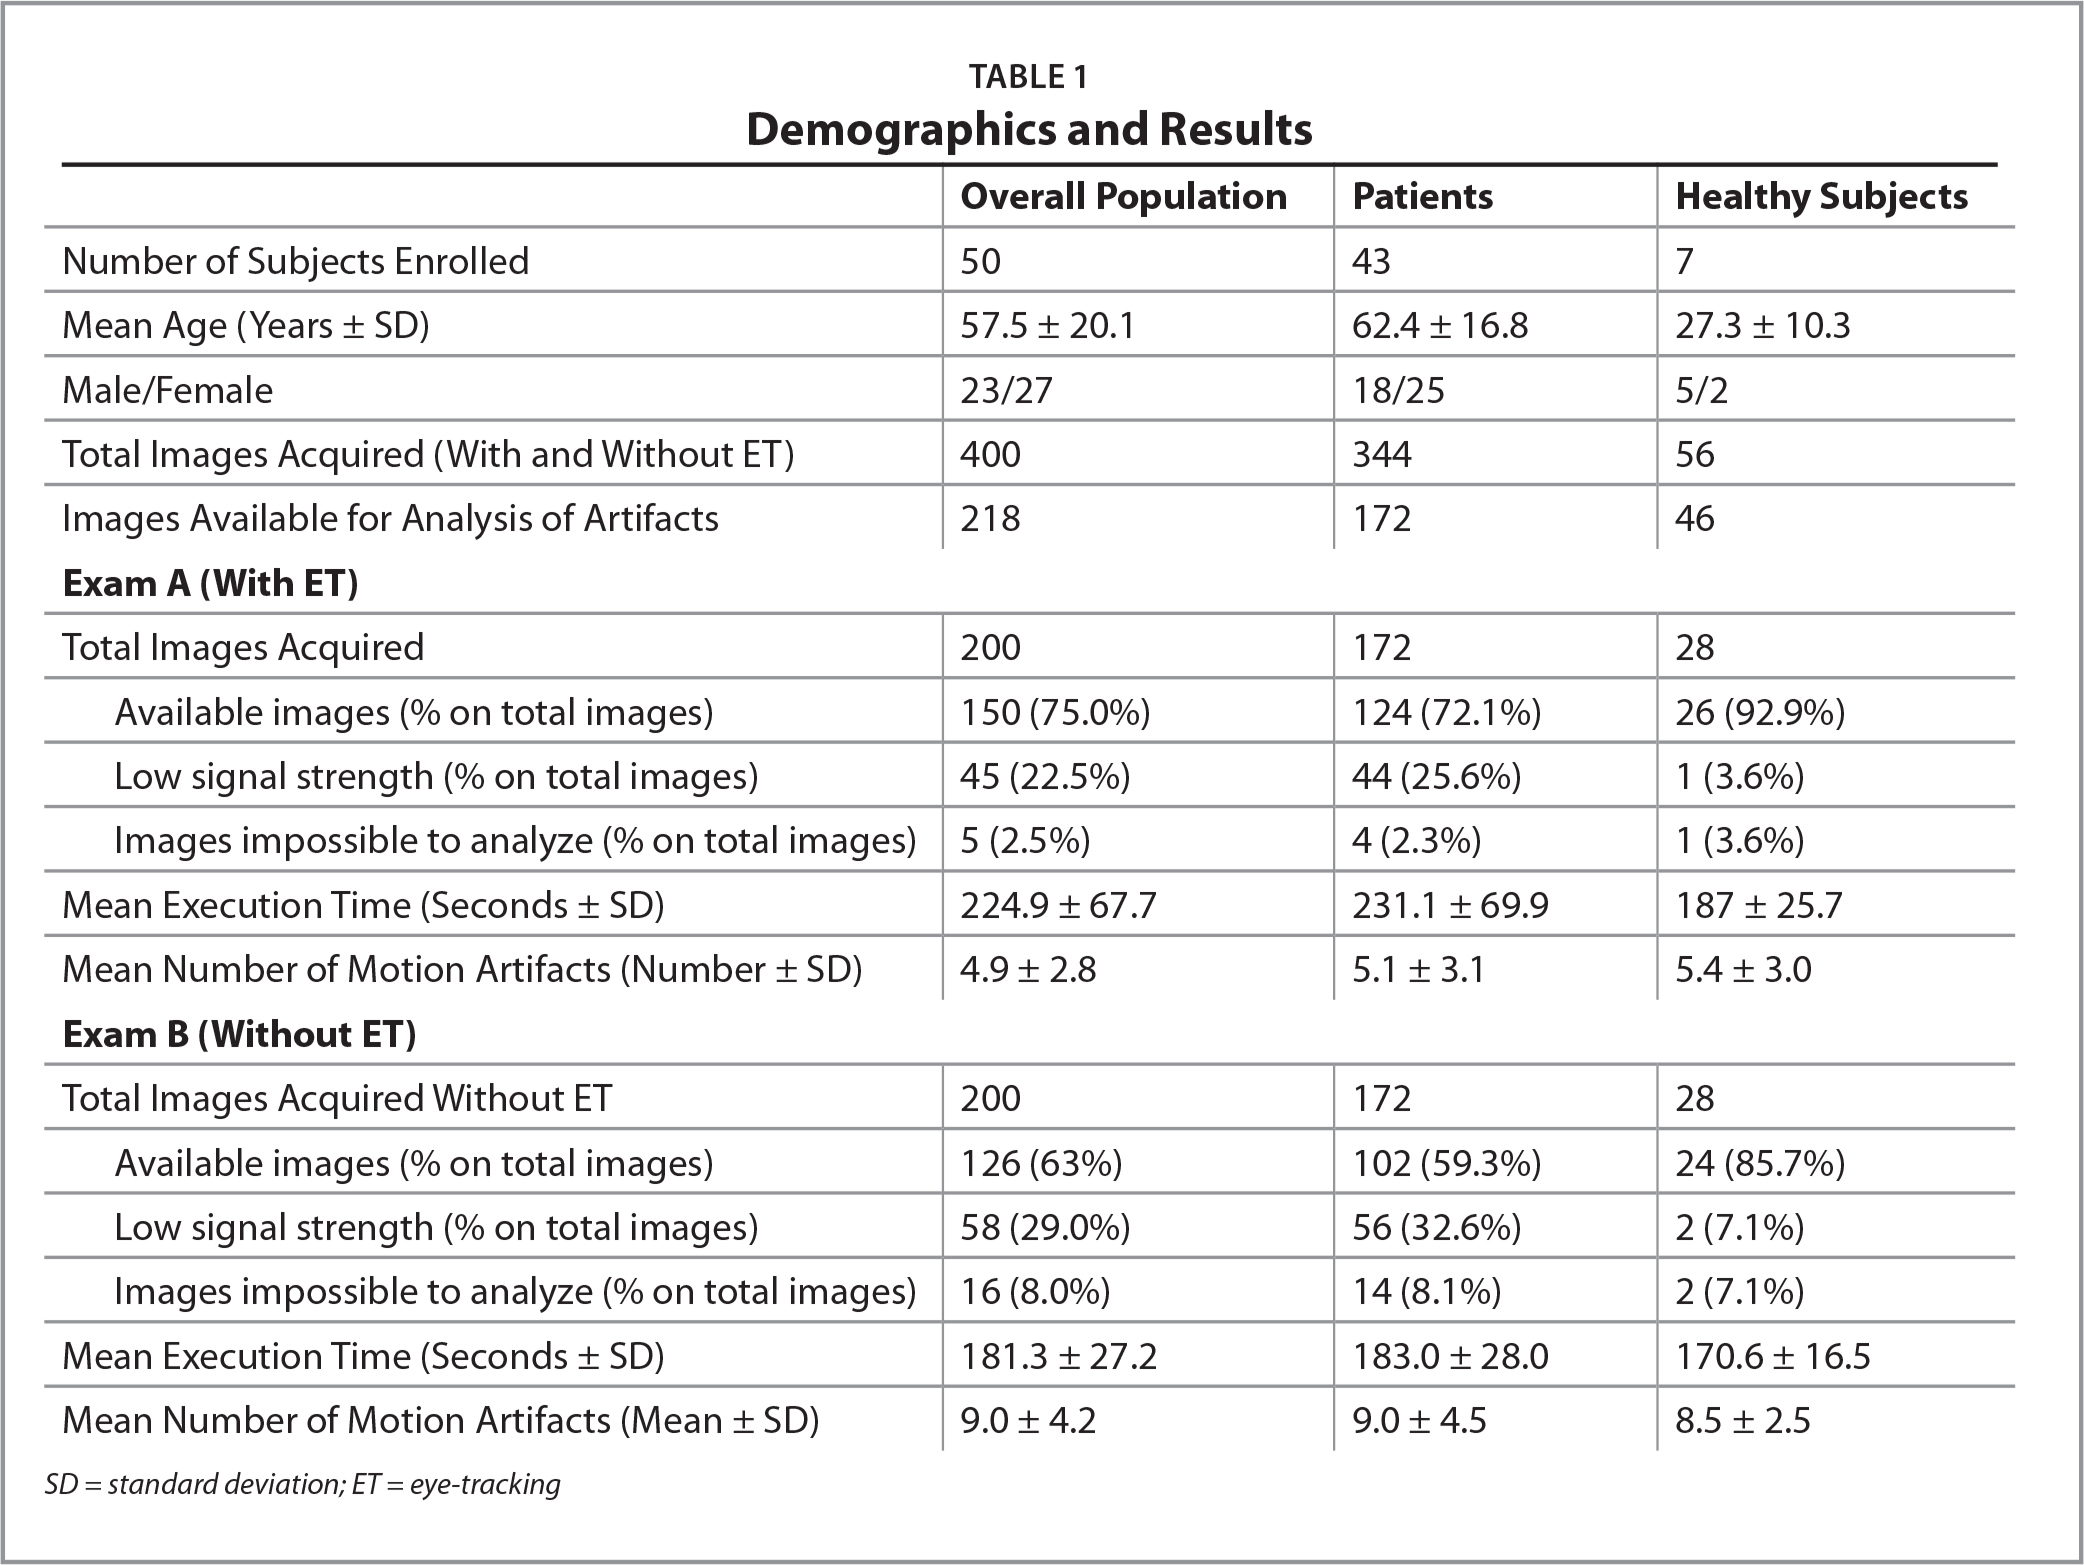 Demographics and Results